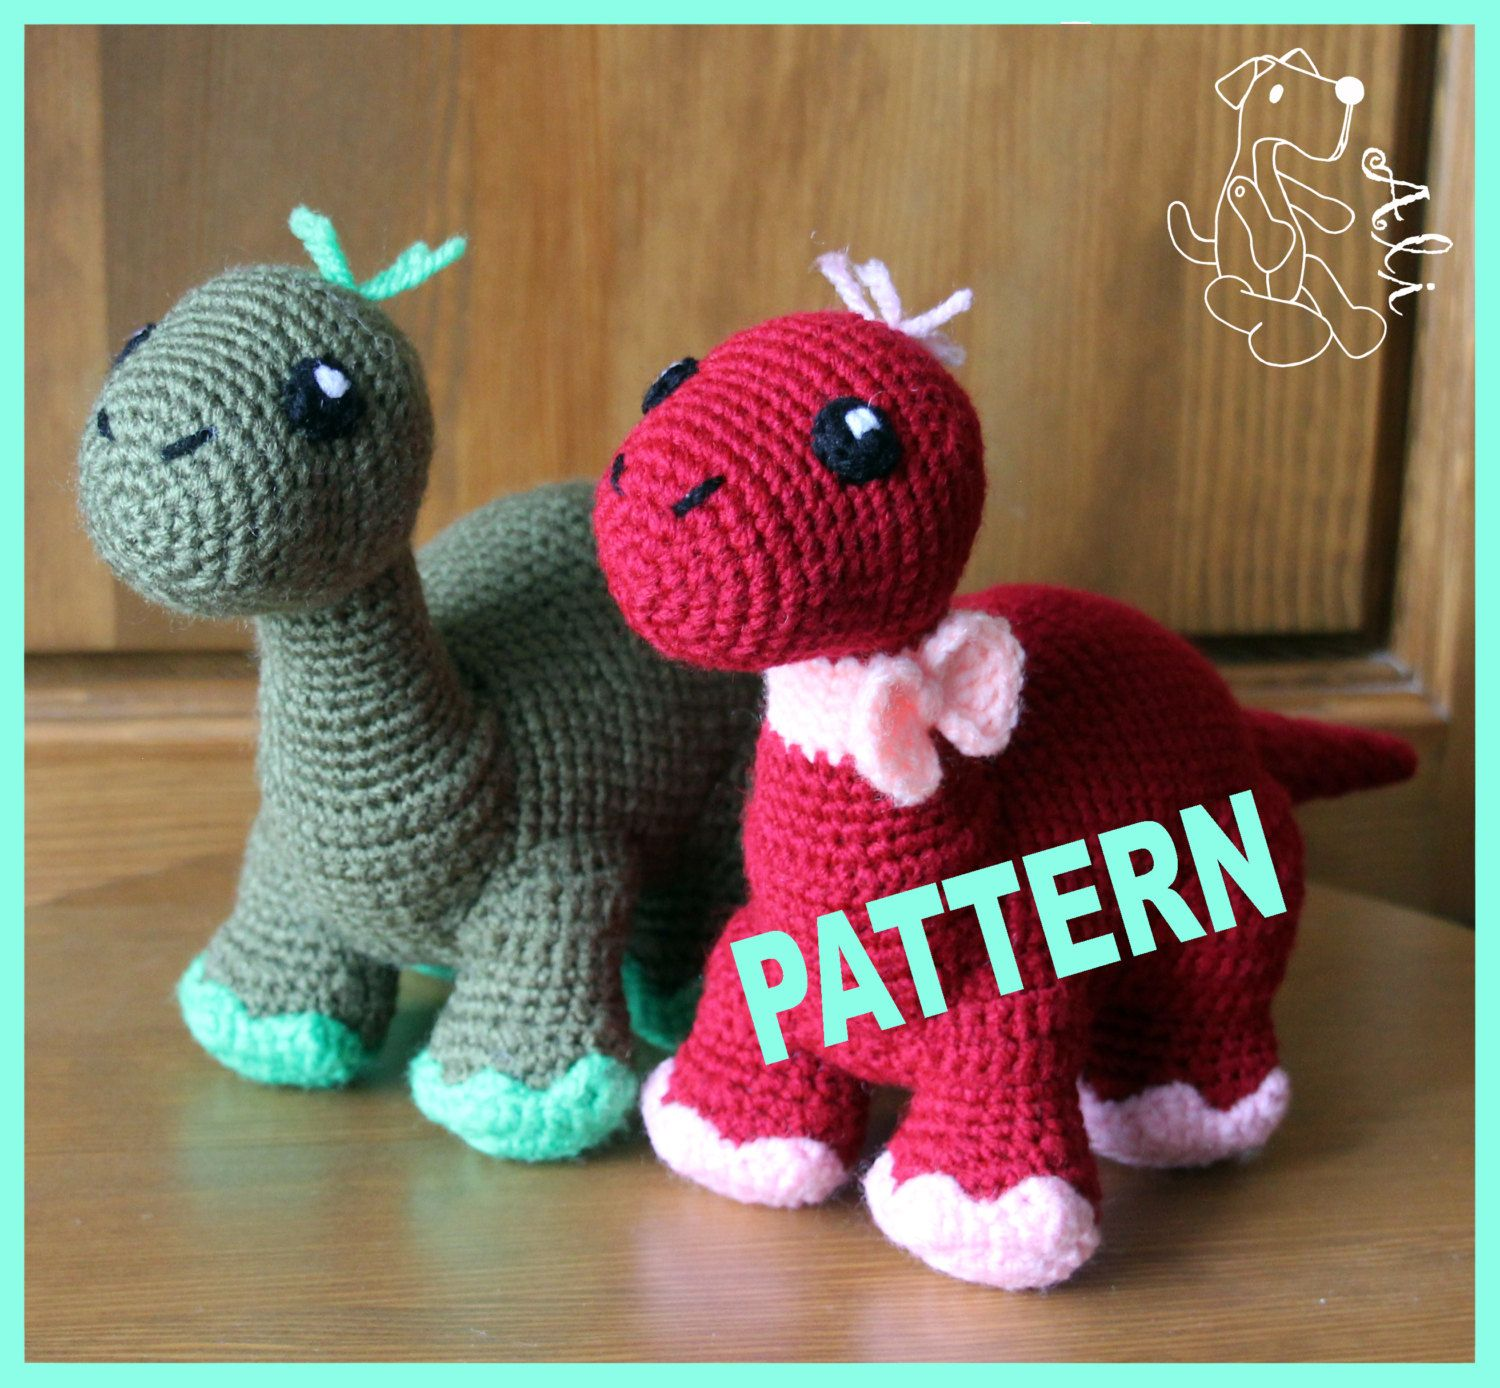 Crochet dinosaur - Pattern in PDF #crochetdinosaurpatterns